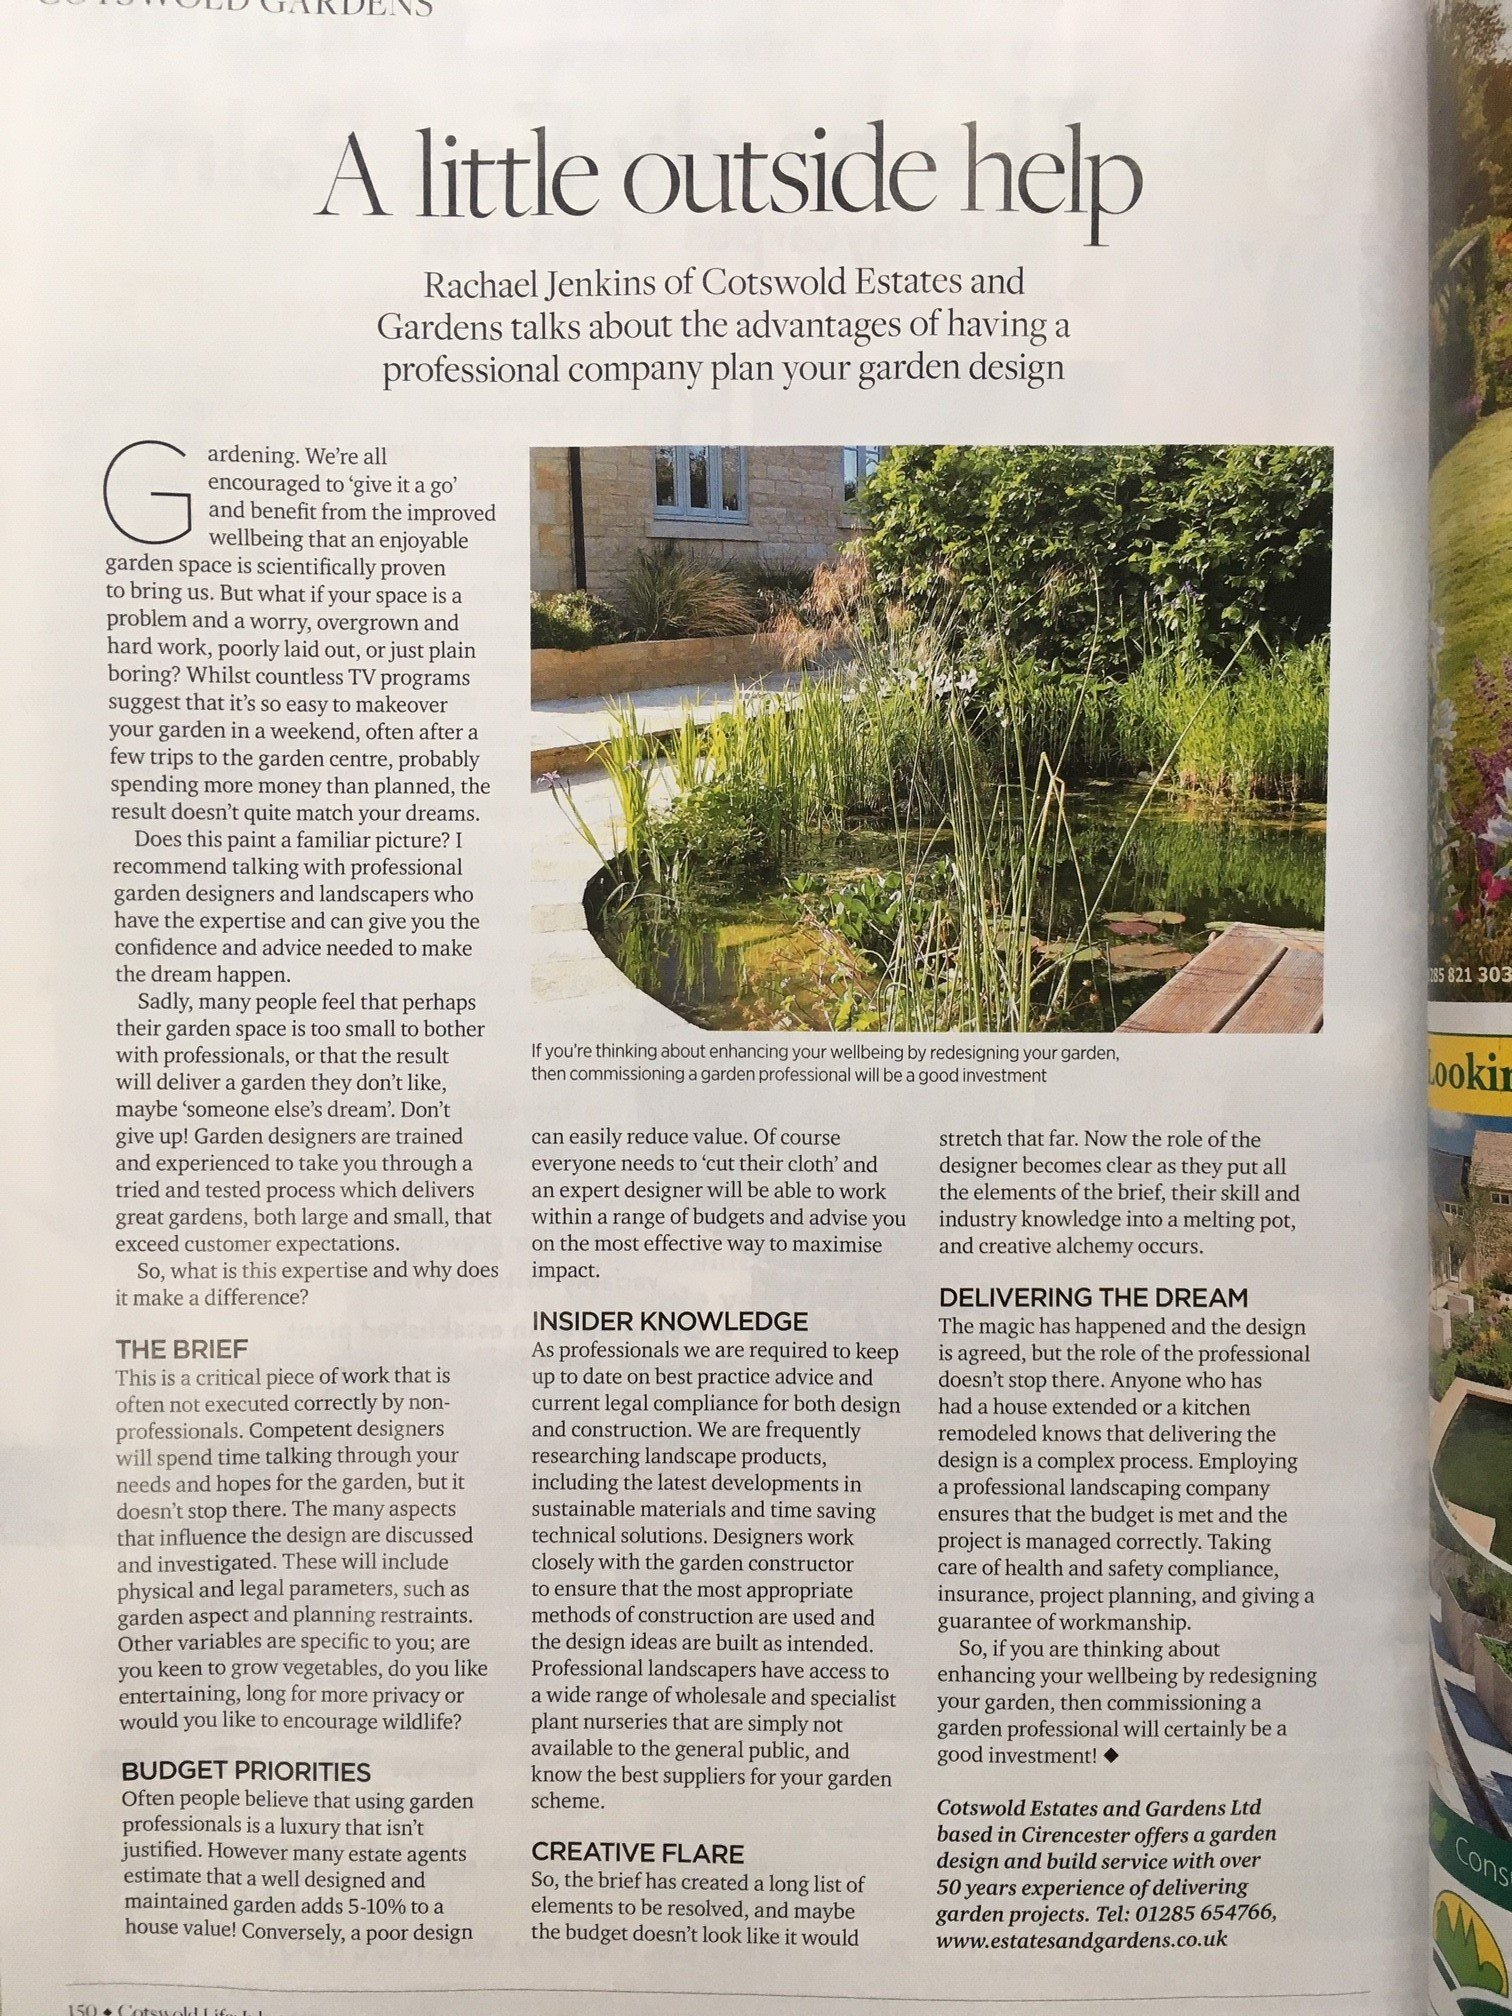 A little Outside help magazine article subject using a garden deisgner